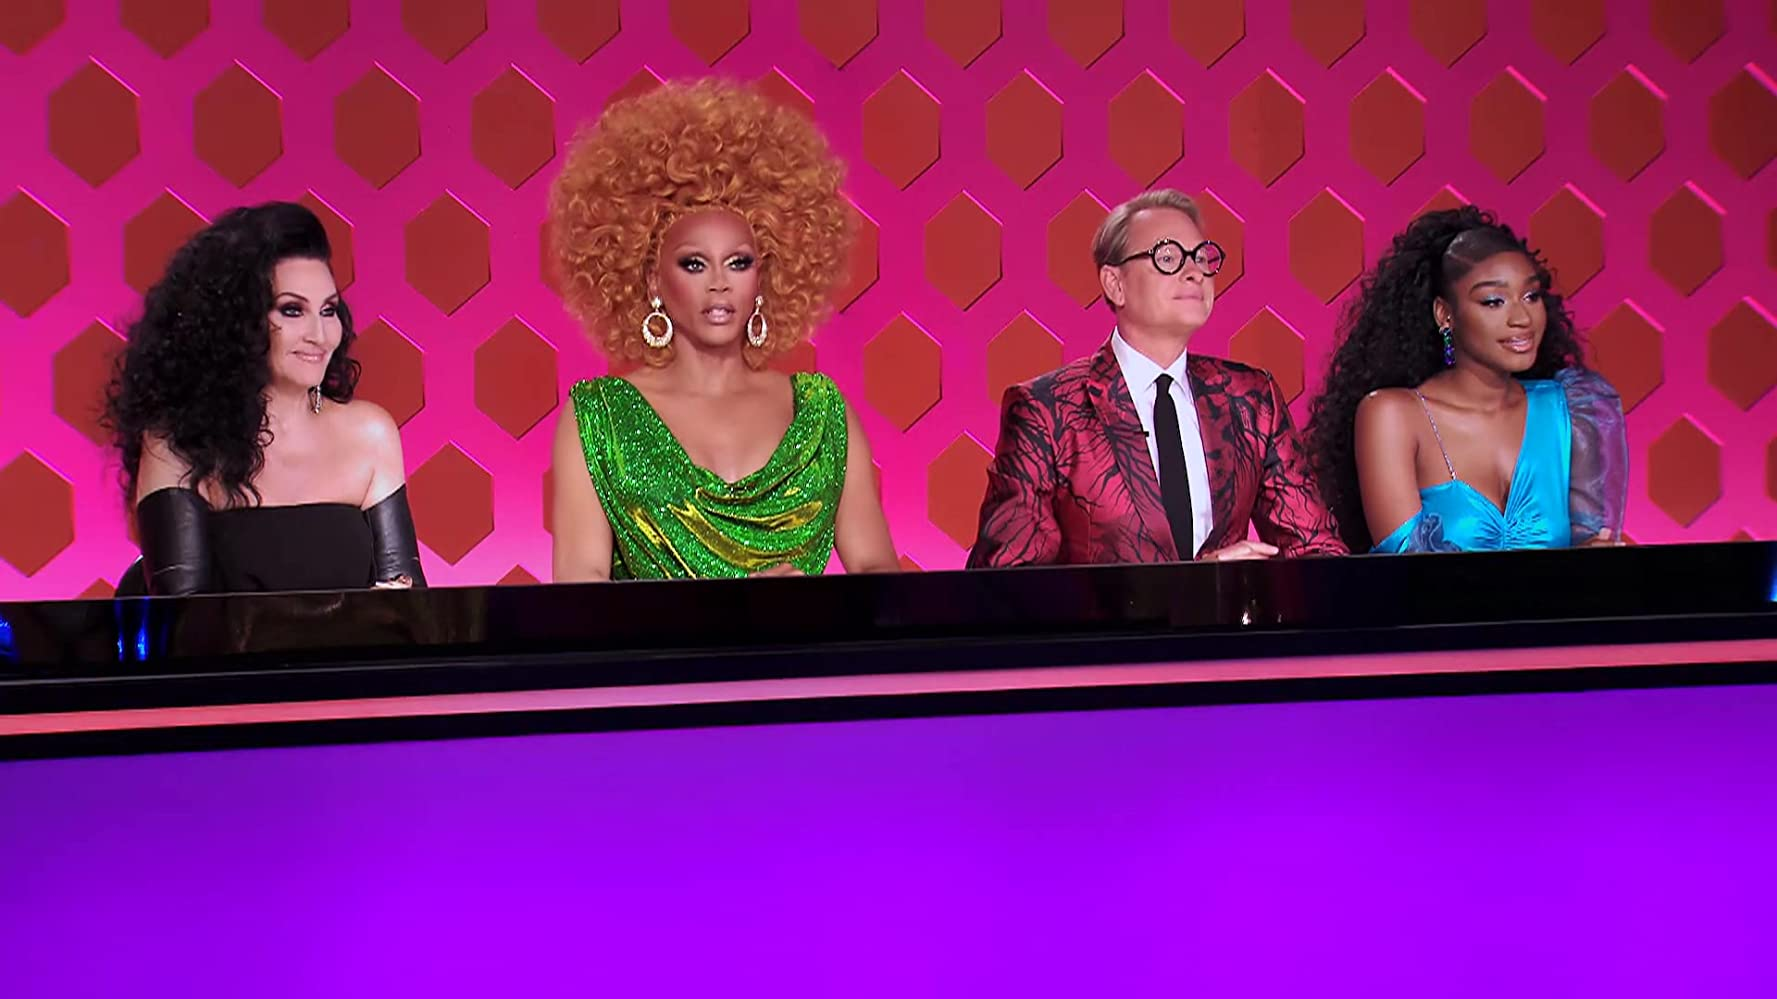 RuPaul, Michelle Visage, Carson Kressley, and Normani in Gay's Anatomy (2020)